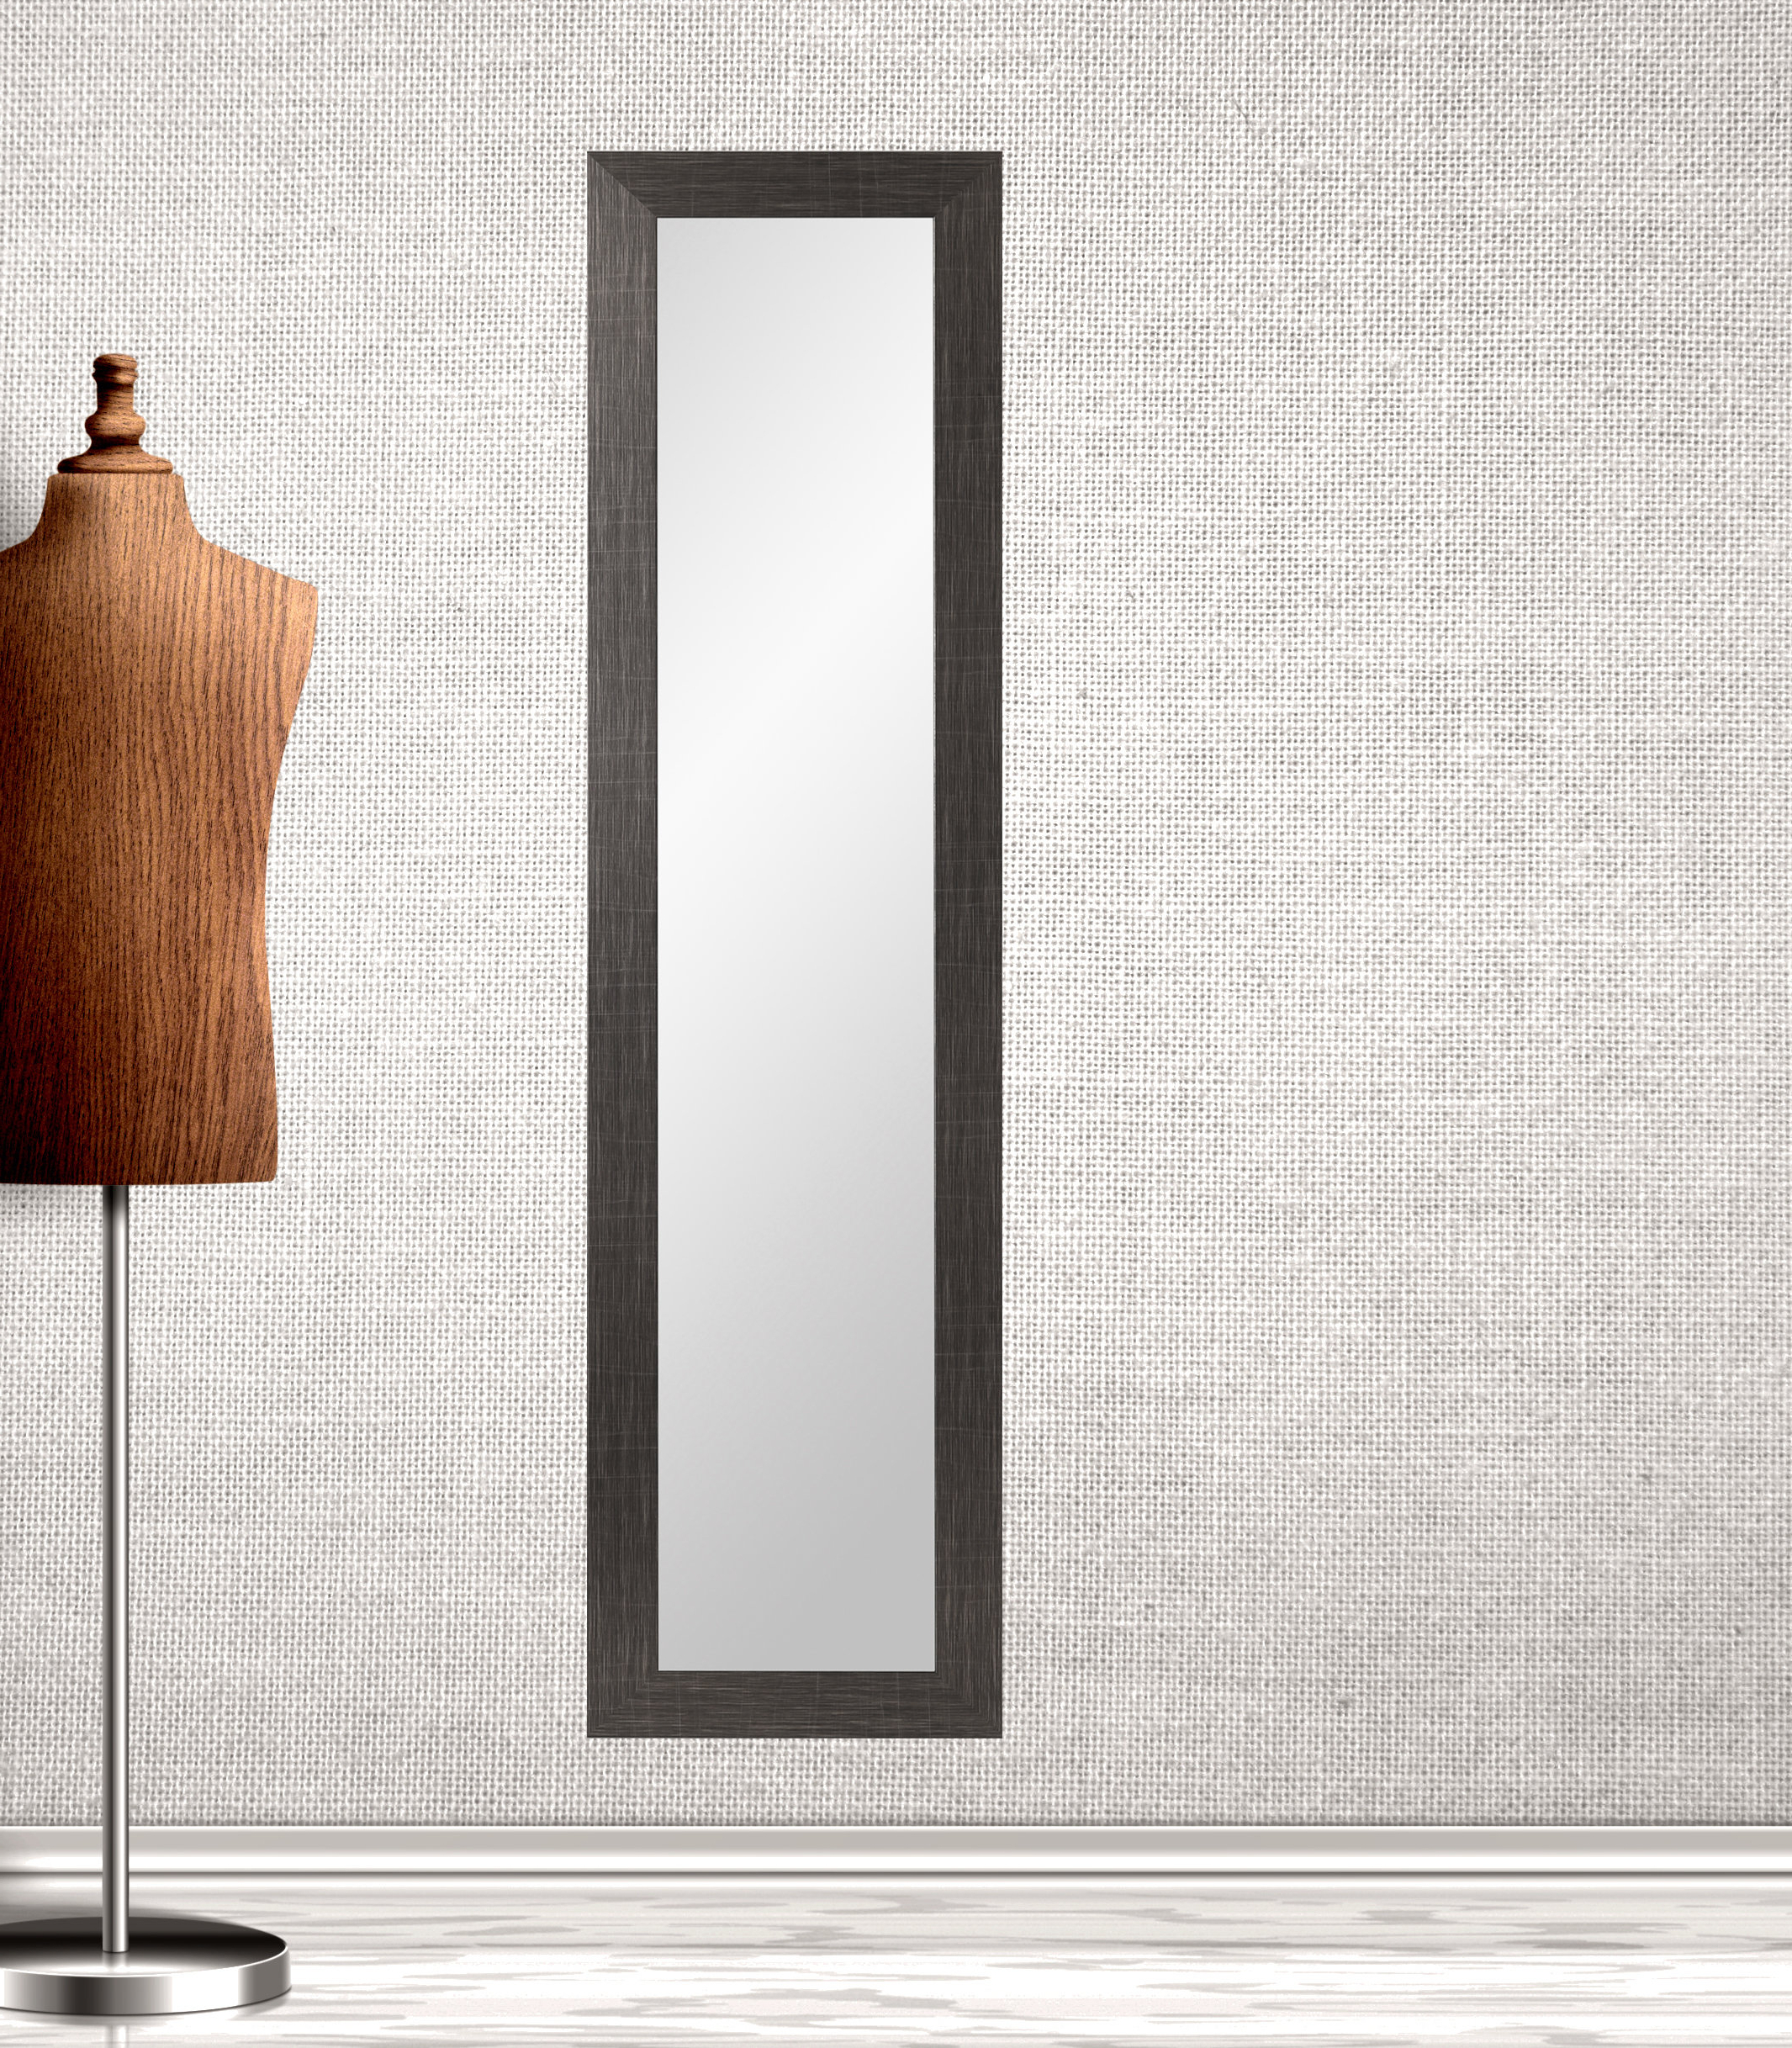 Finchamp Fitting Room Full Length Wall Mirror Regarding Most Current Full Length Wall Mirrors (View 16 of 20)